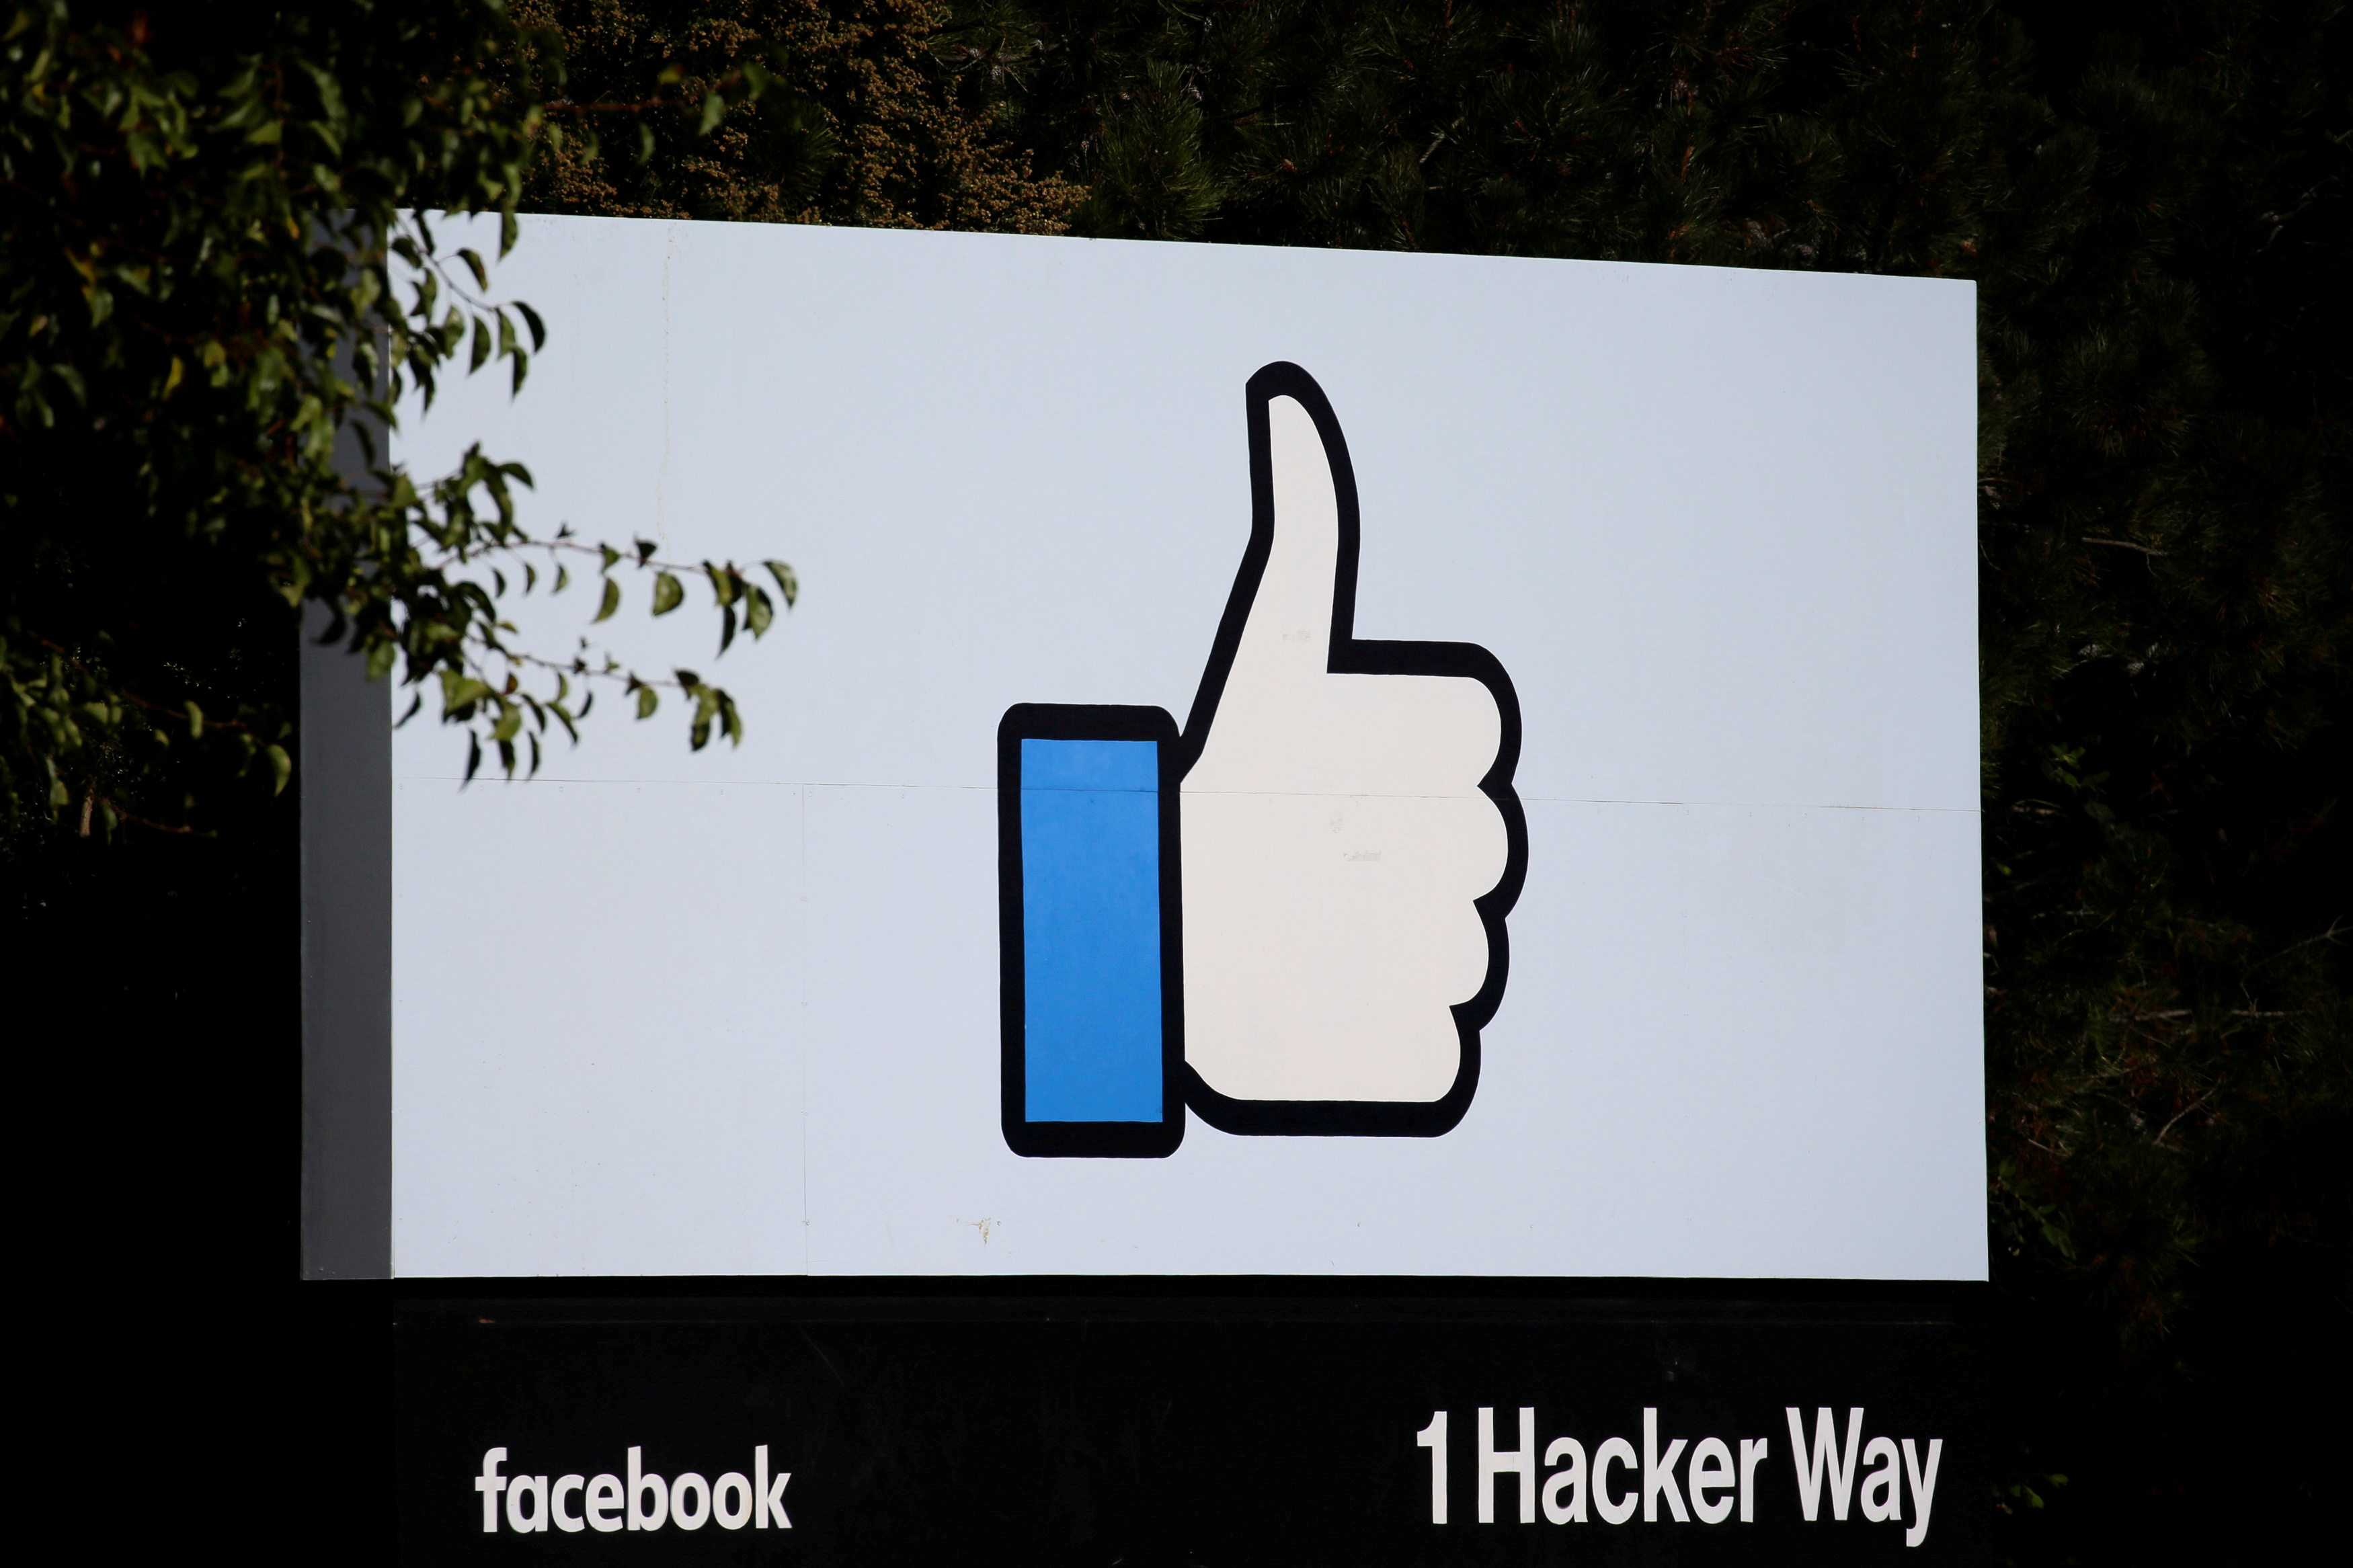 FILE PHOTO: The entrance sign to Facebook headquarters is seen in Menlo Park, California, on Wednesday, October 10, 2018. REUTERS/Elijah Nouvelage/File Photo